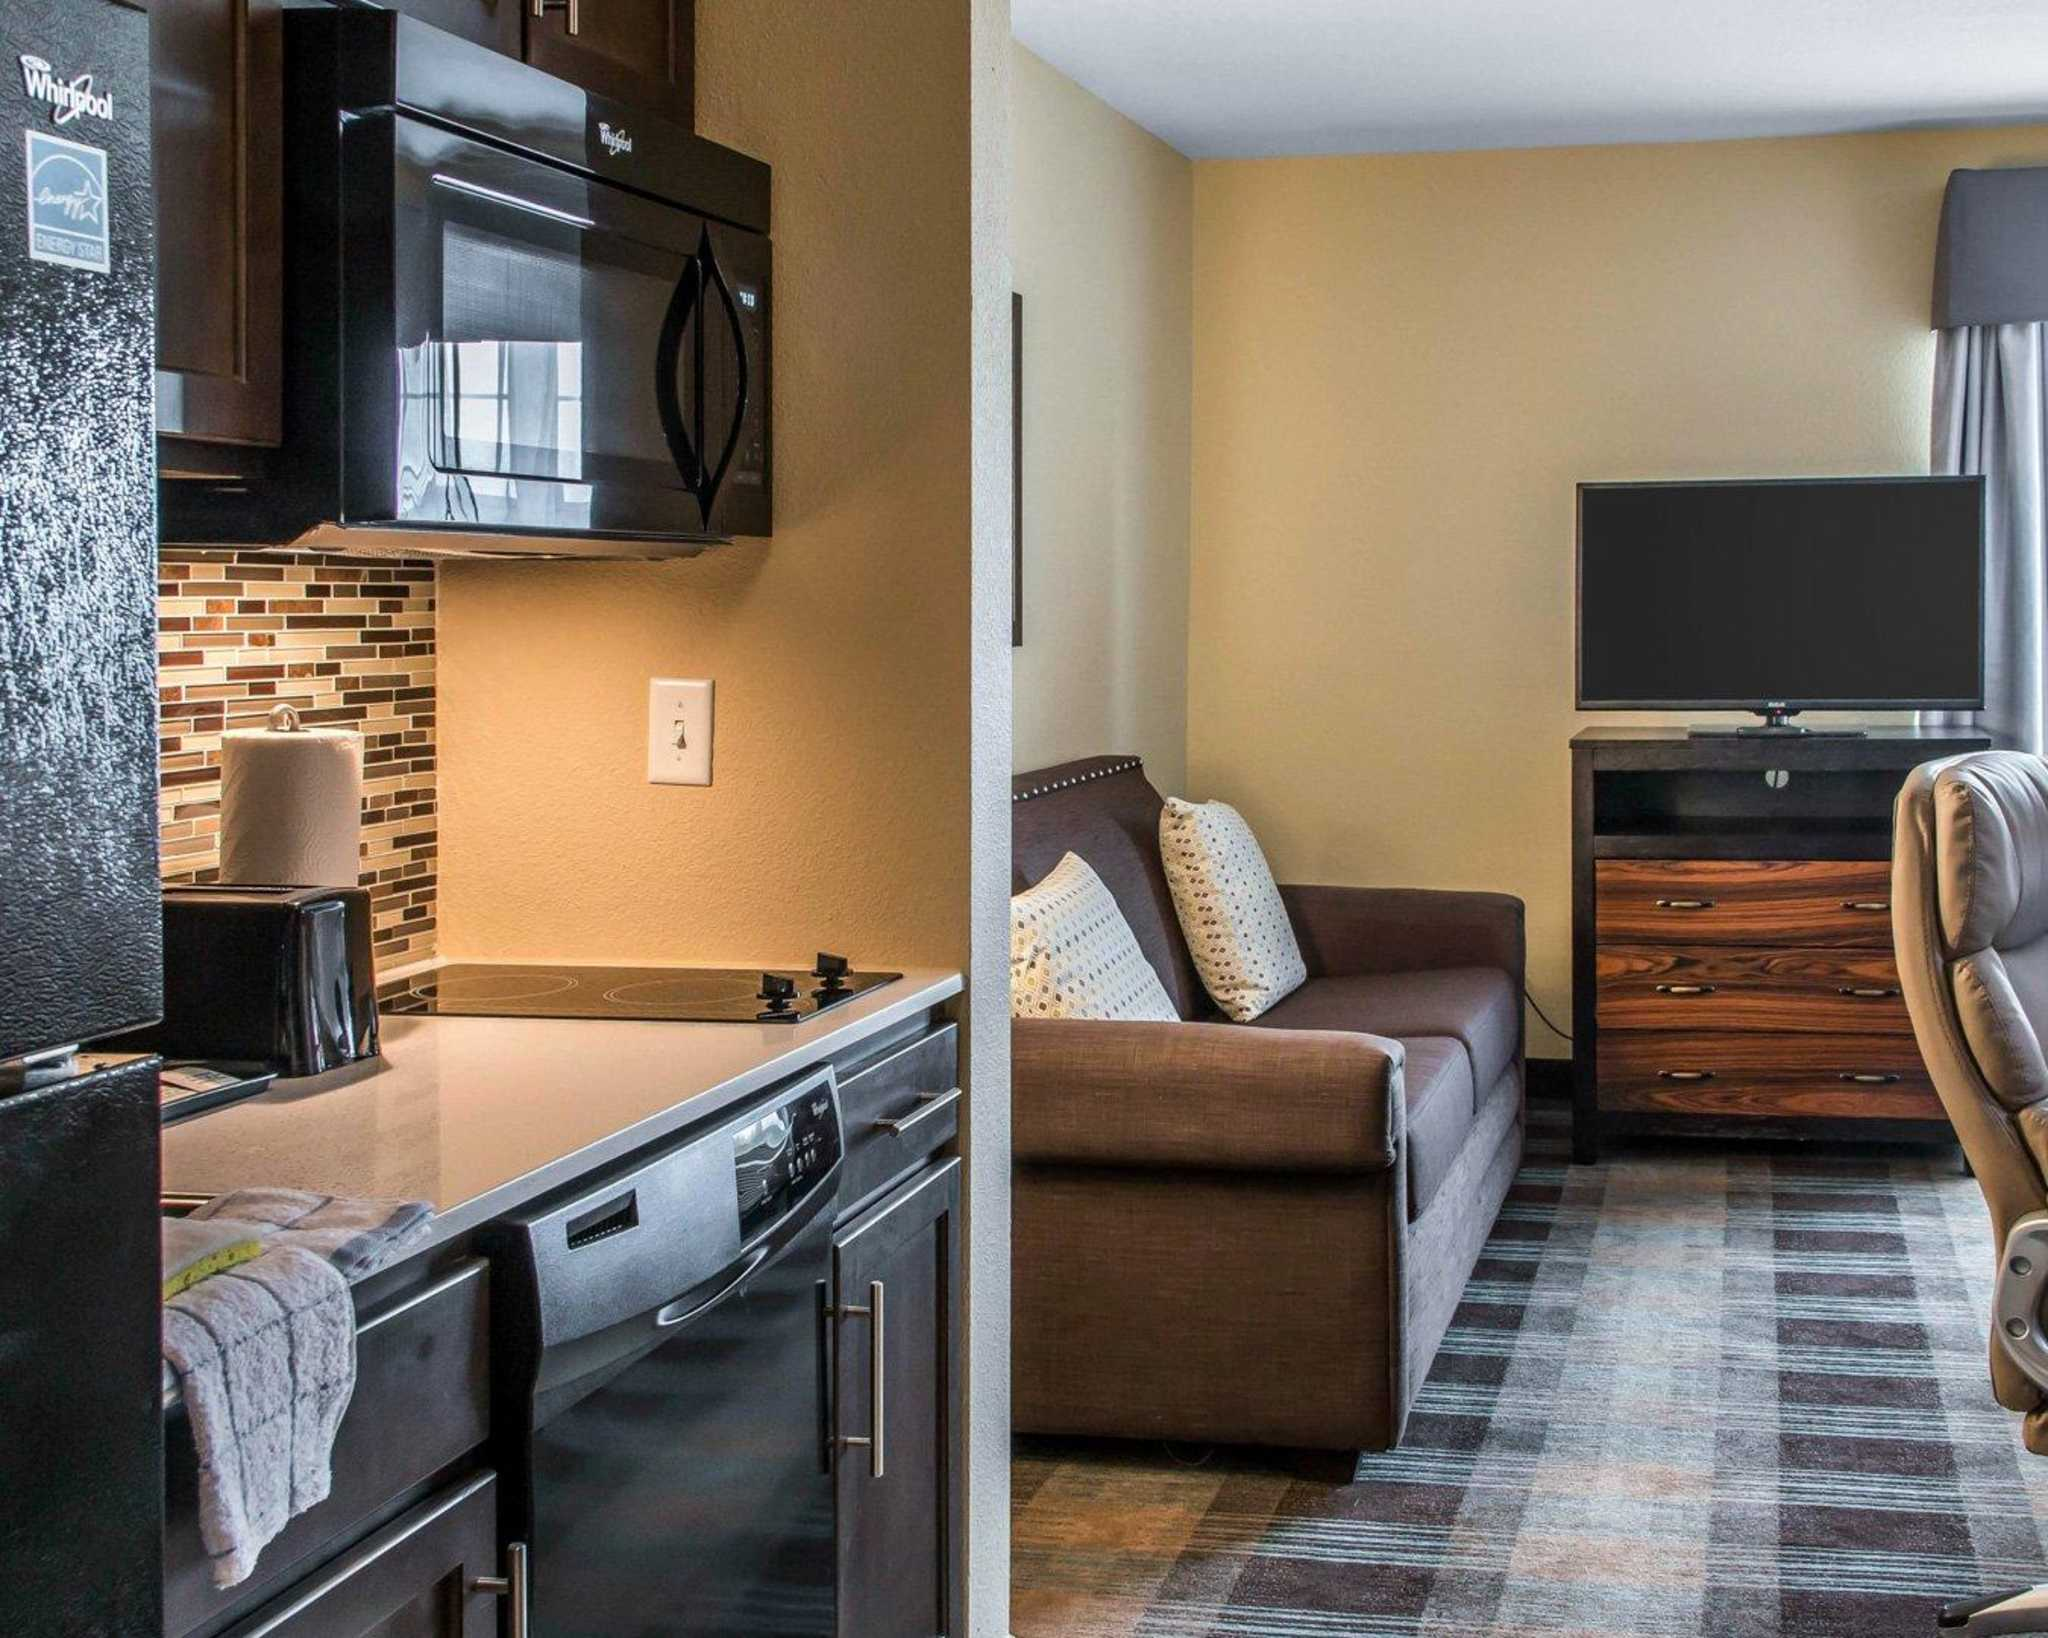 MainStay Suites image 16